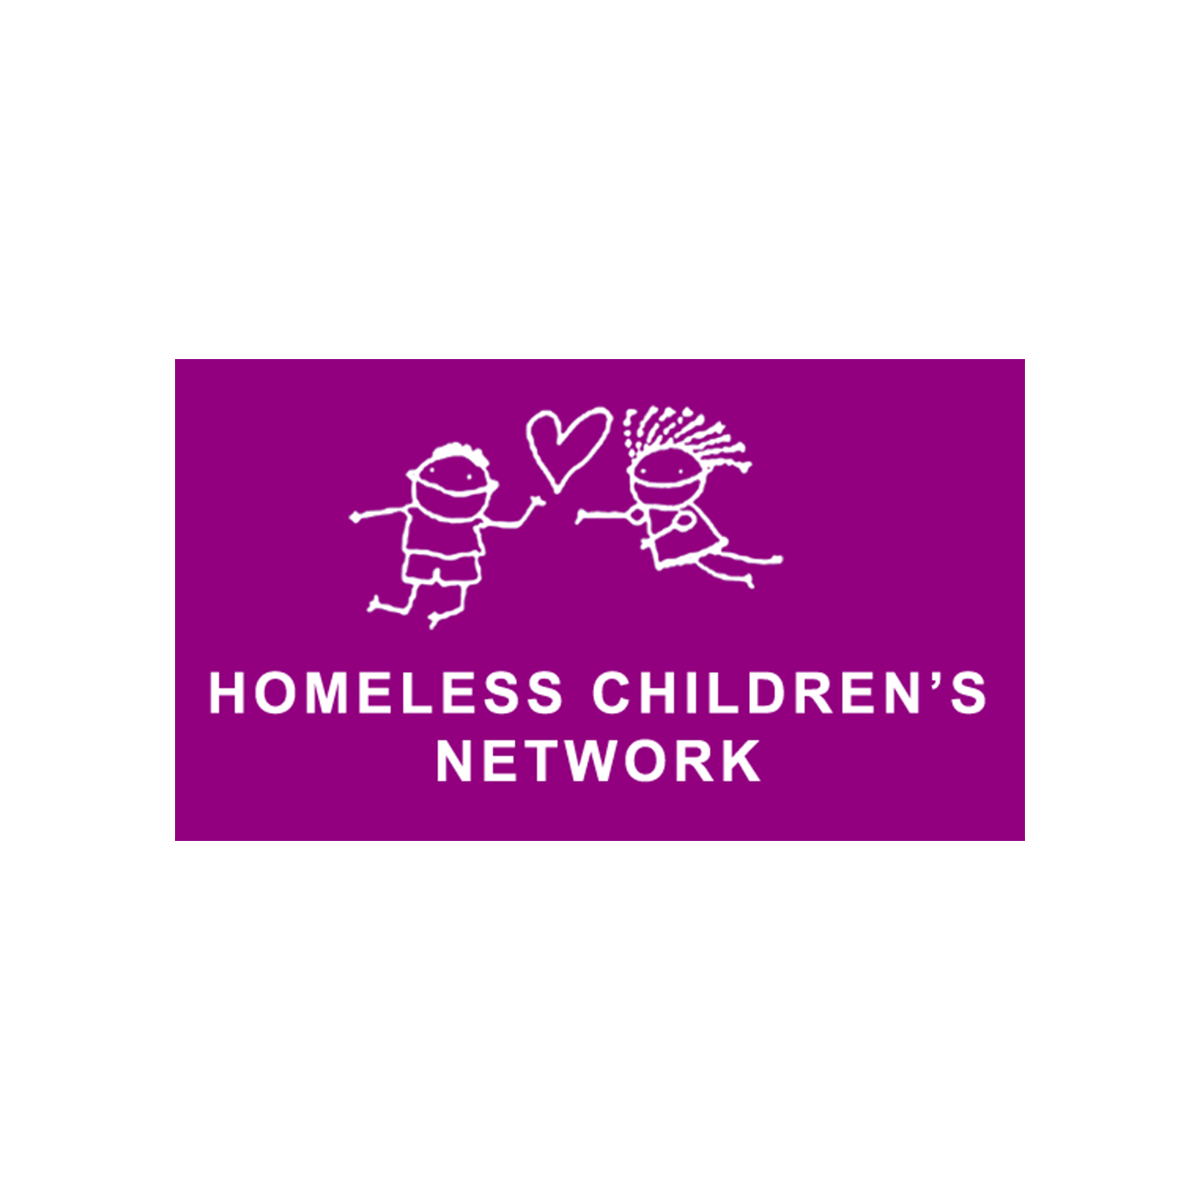 - Homeless Children's NetworkWorking collaboratively with over 52 providers to end homelessness and poverty.